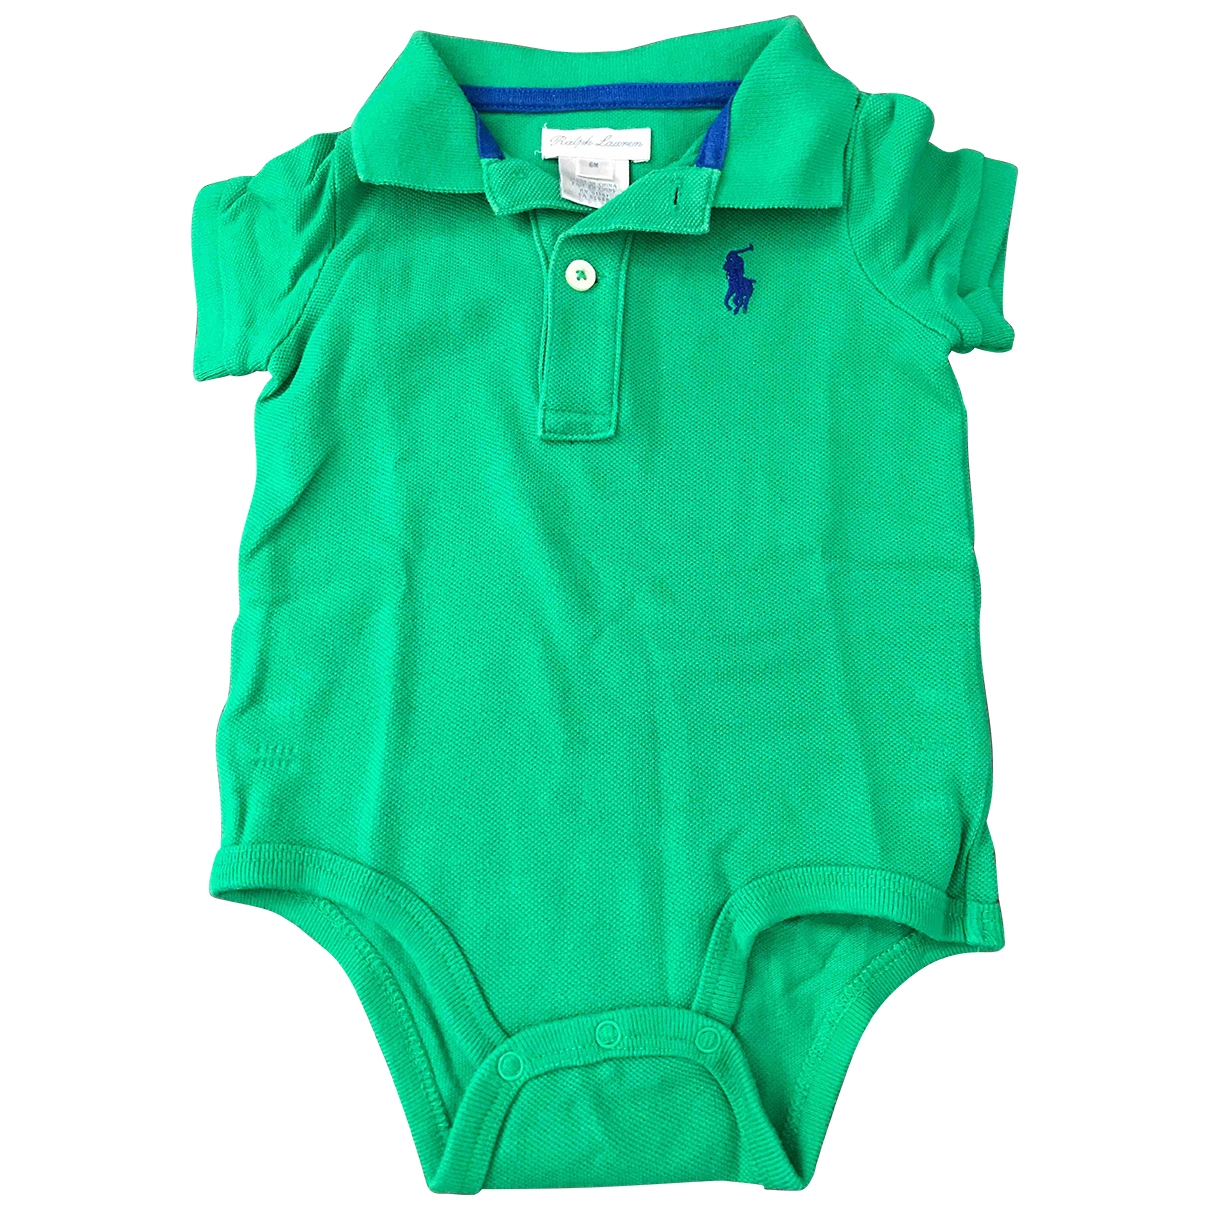 Ralph Lauren \N Green Cotton Outfits for Kids 6 months - until 26.5 inches UK